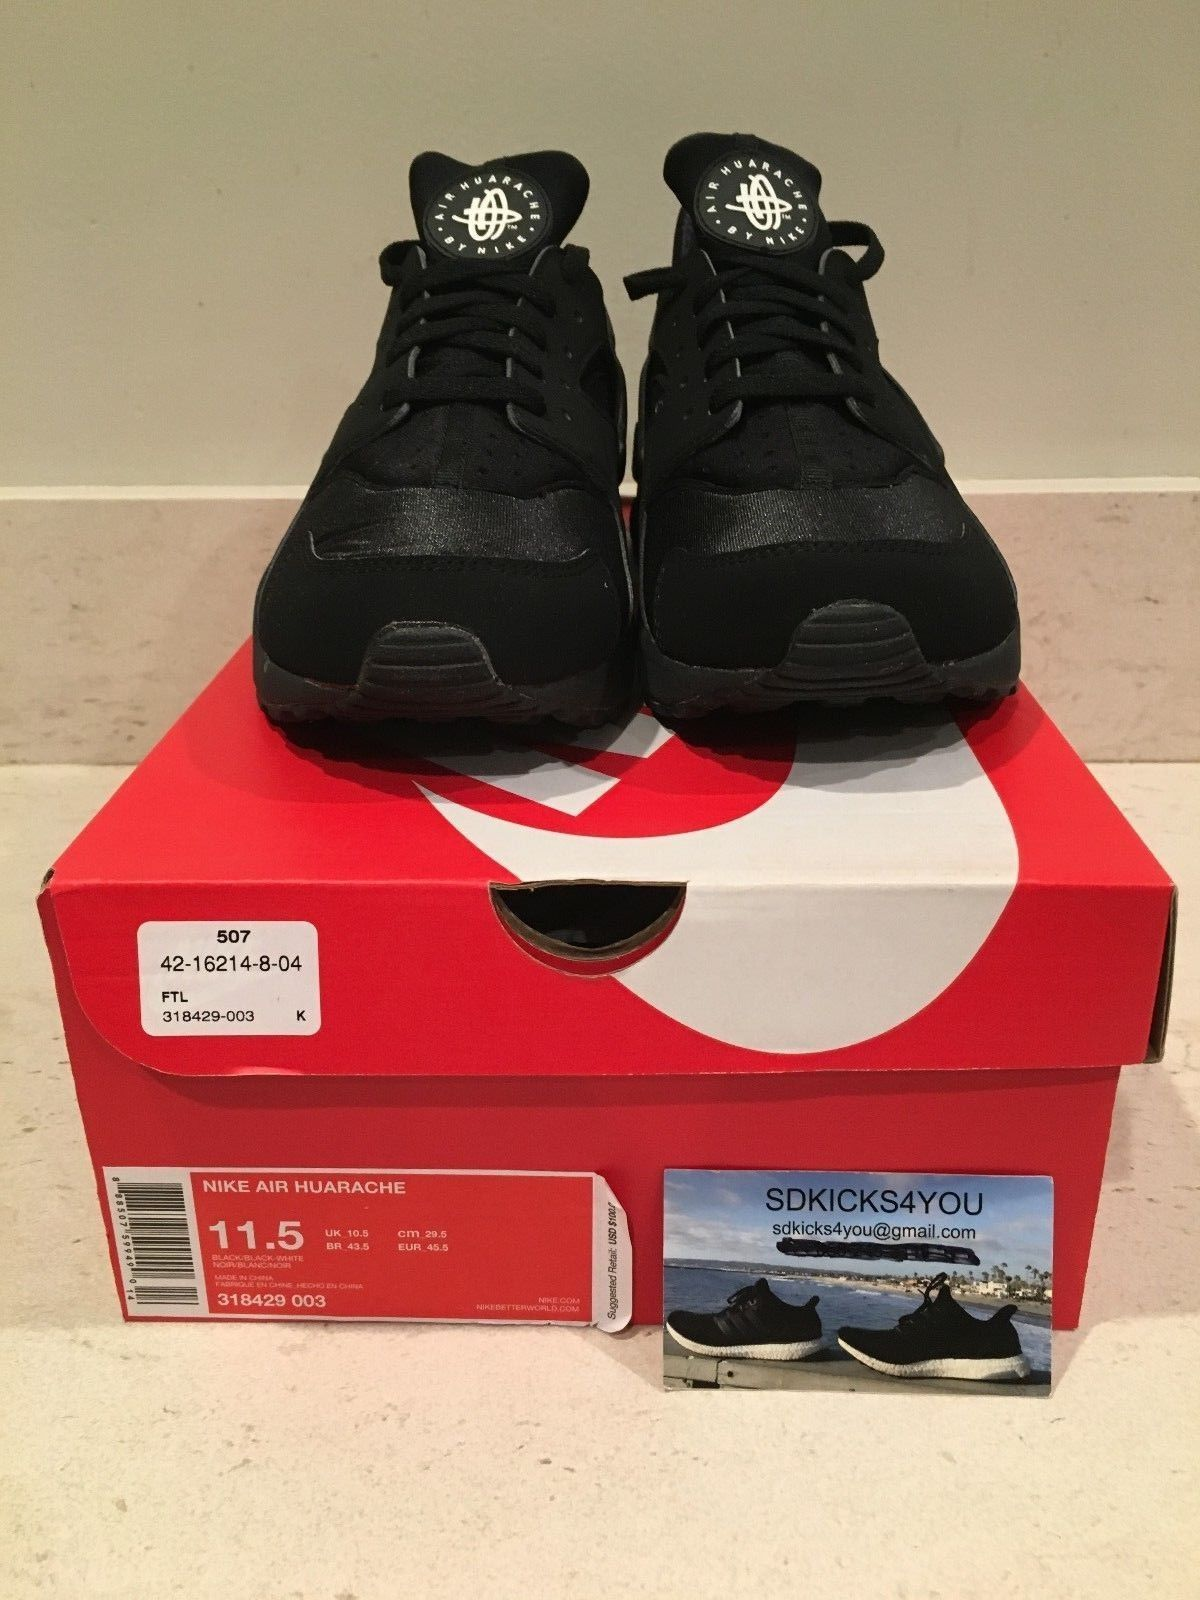 New Nike Air Huarache Triple Black Blackout Mens Running Shoes Size 11.5